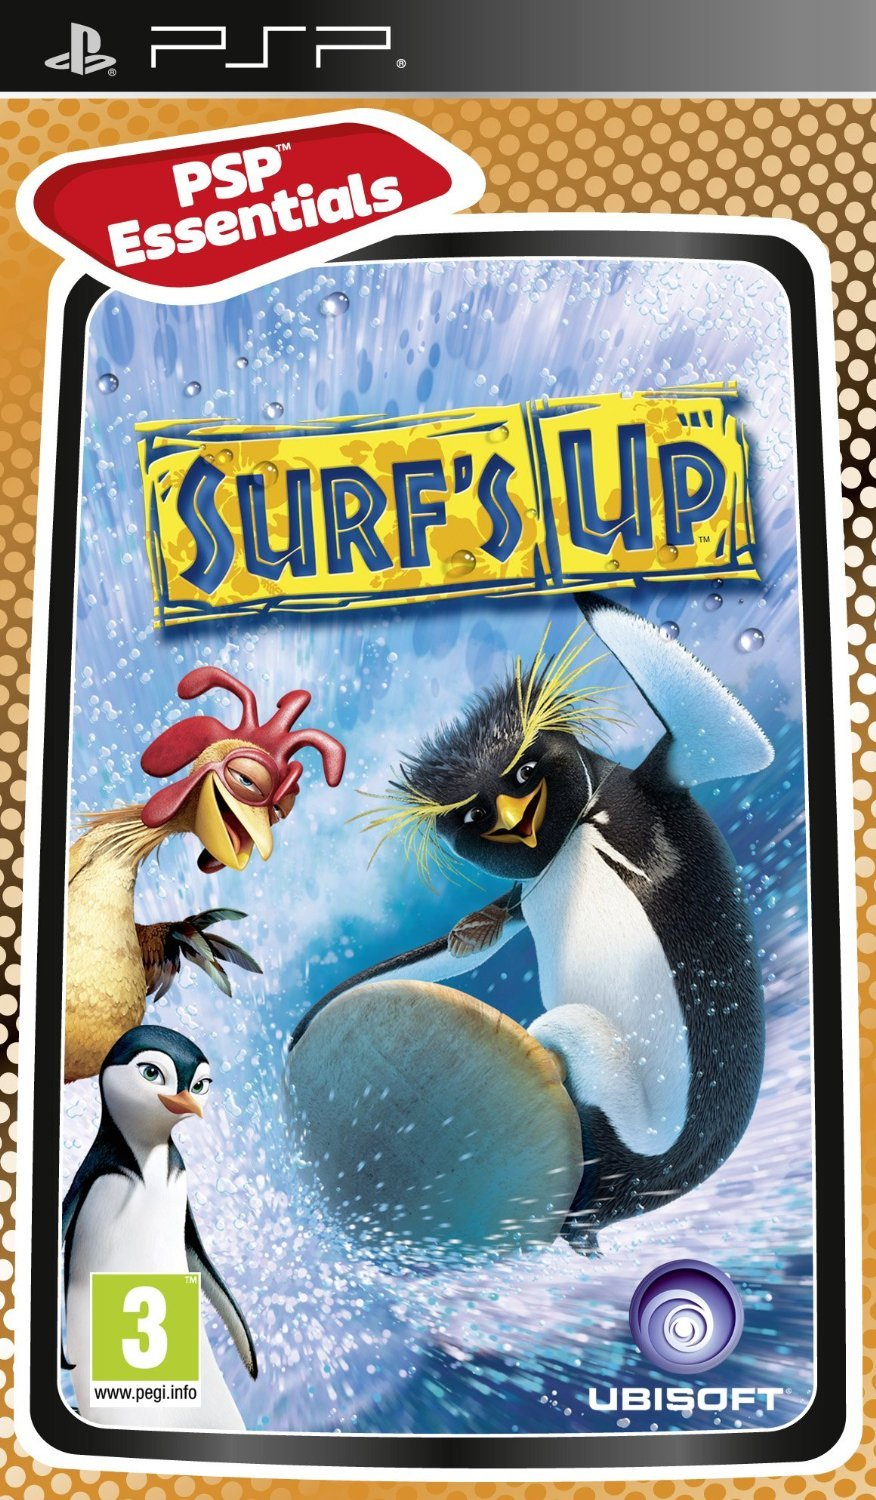 Surf's Up (Essentials) for PSP image